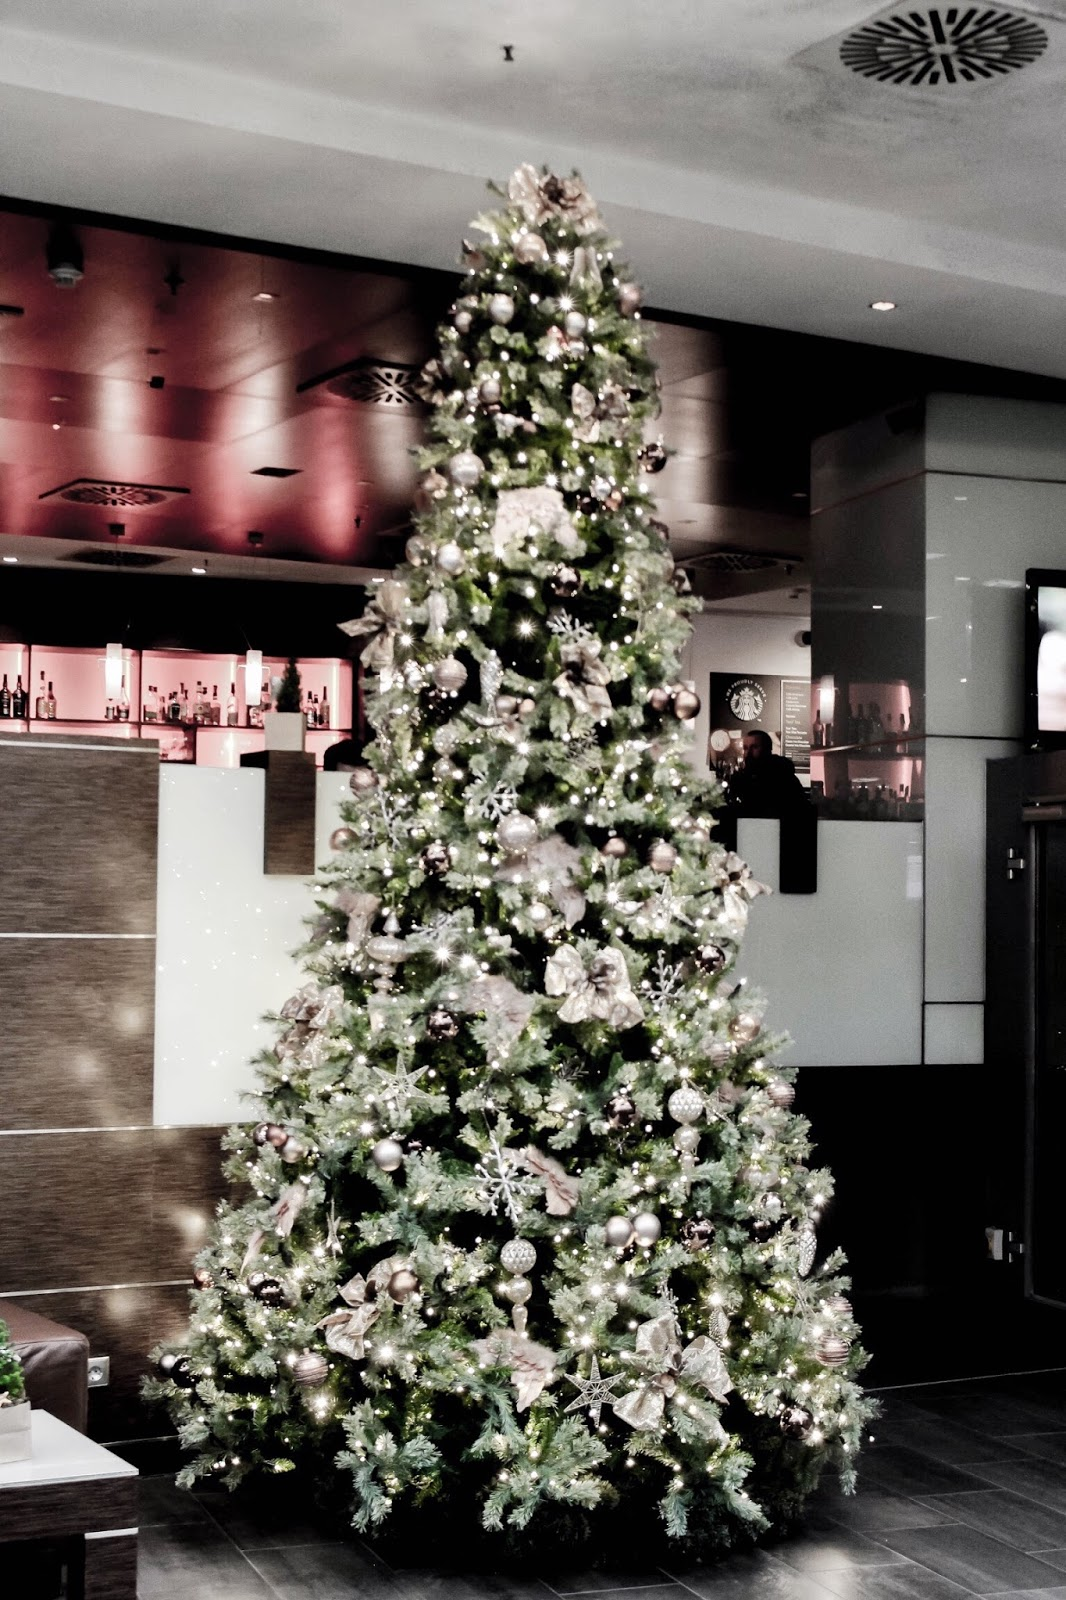 Hotel Hilton Cologne Christmas Tree Decoration Foyer